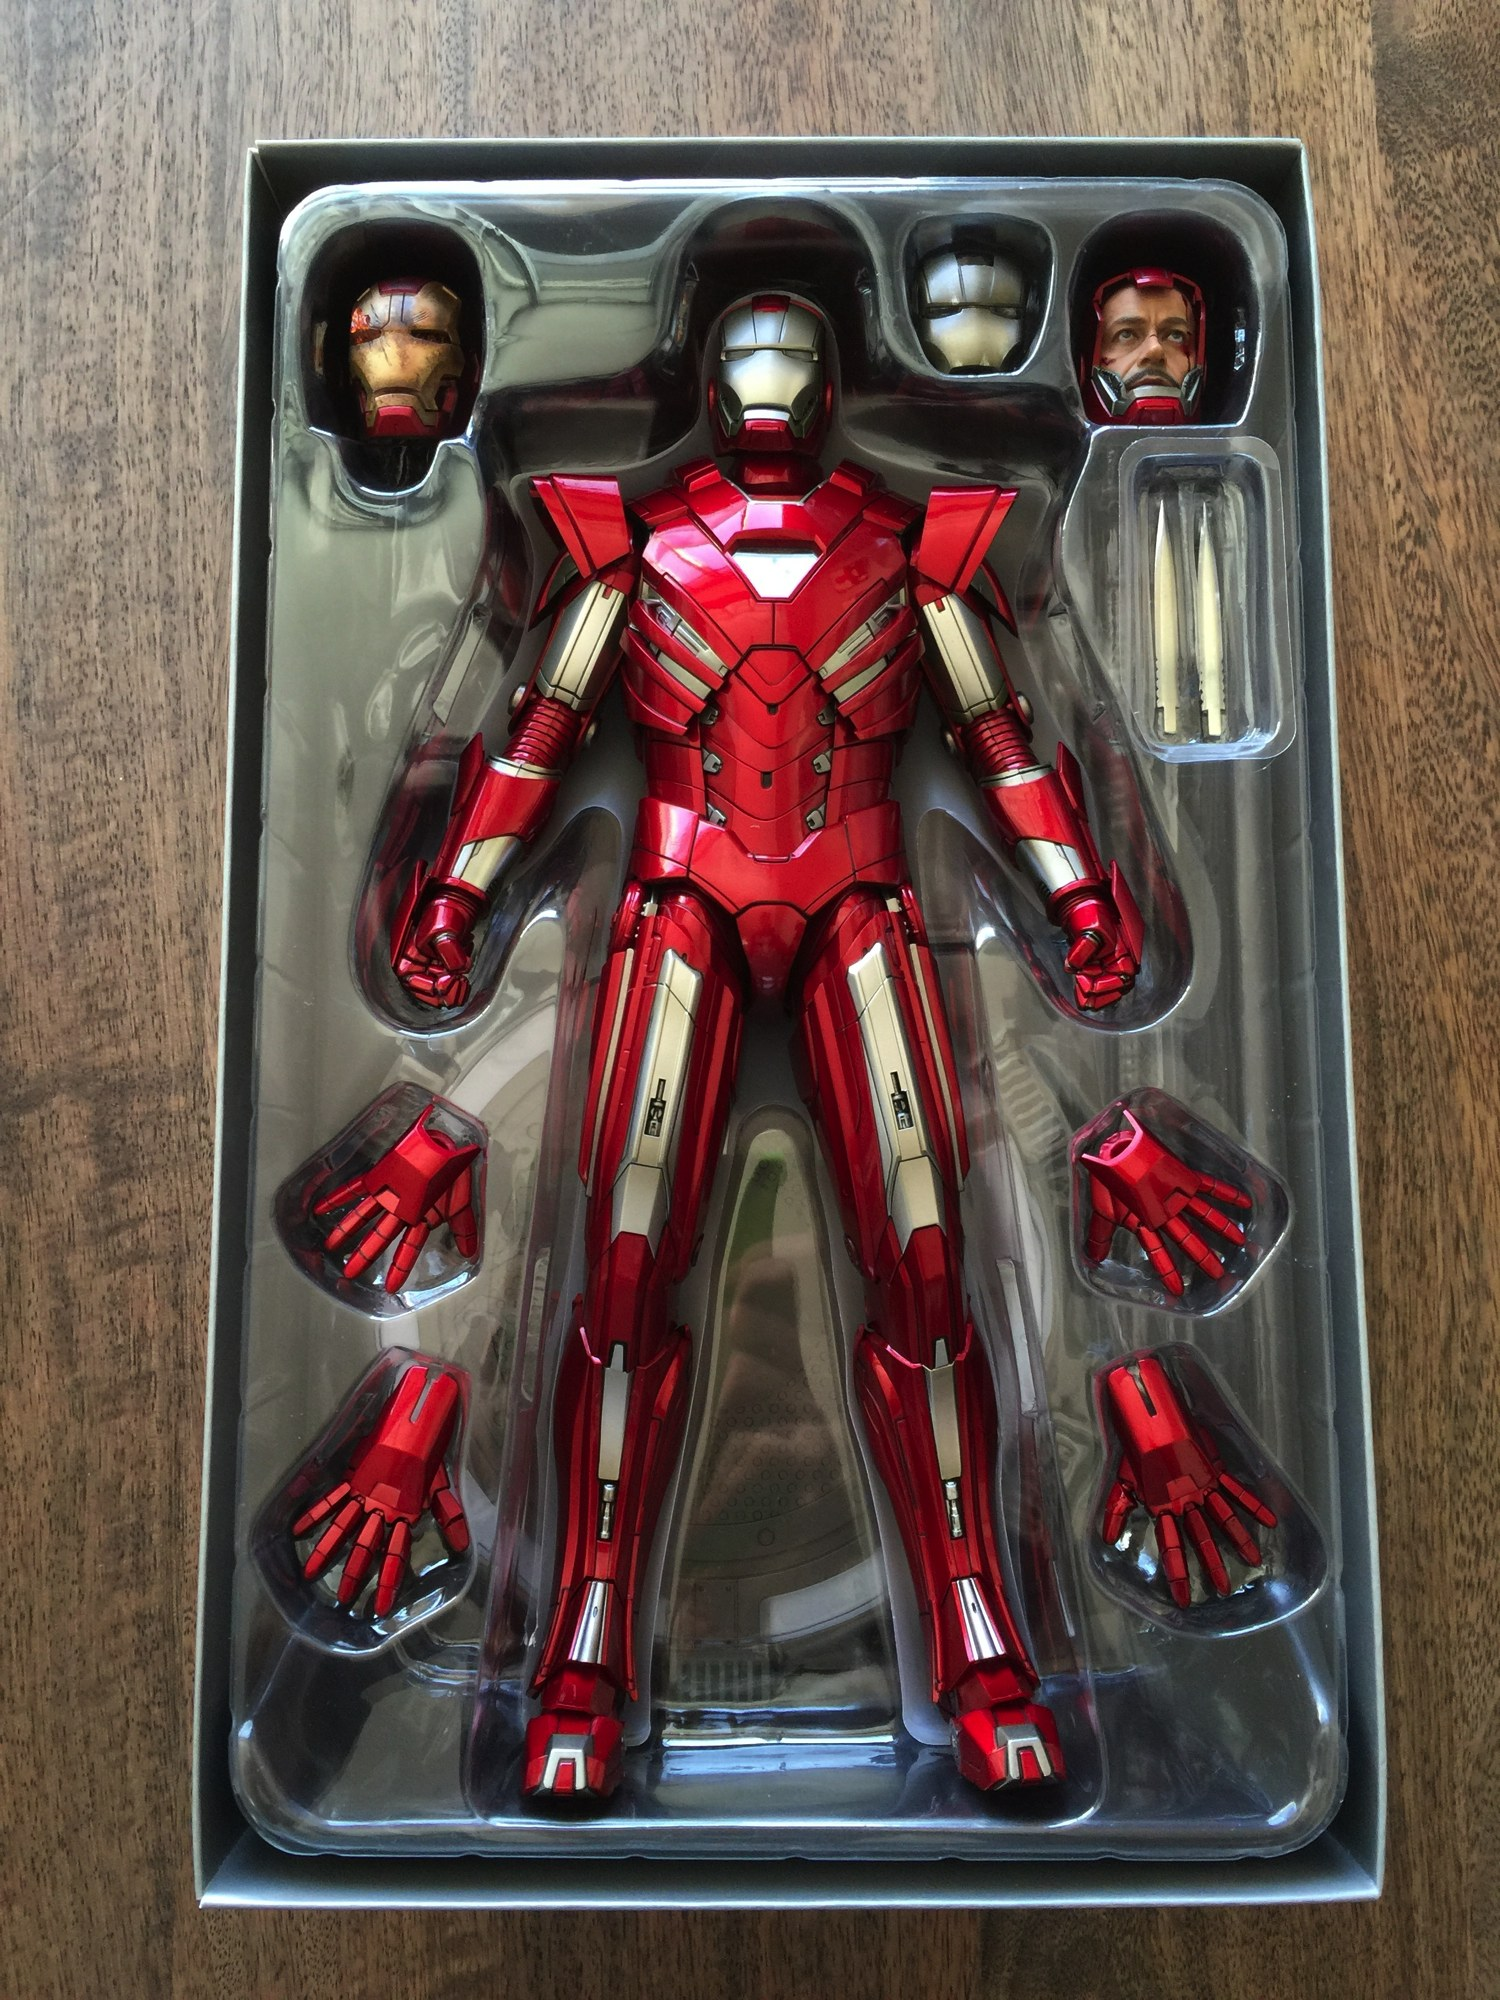 Coolest Man Toys : Cool stuff hot toys iron man mark sixth scale figure